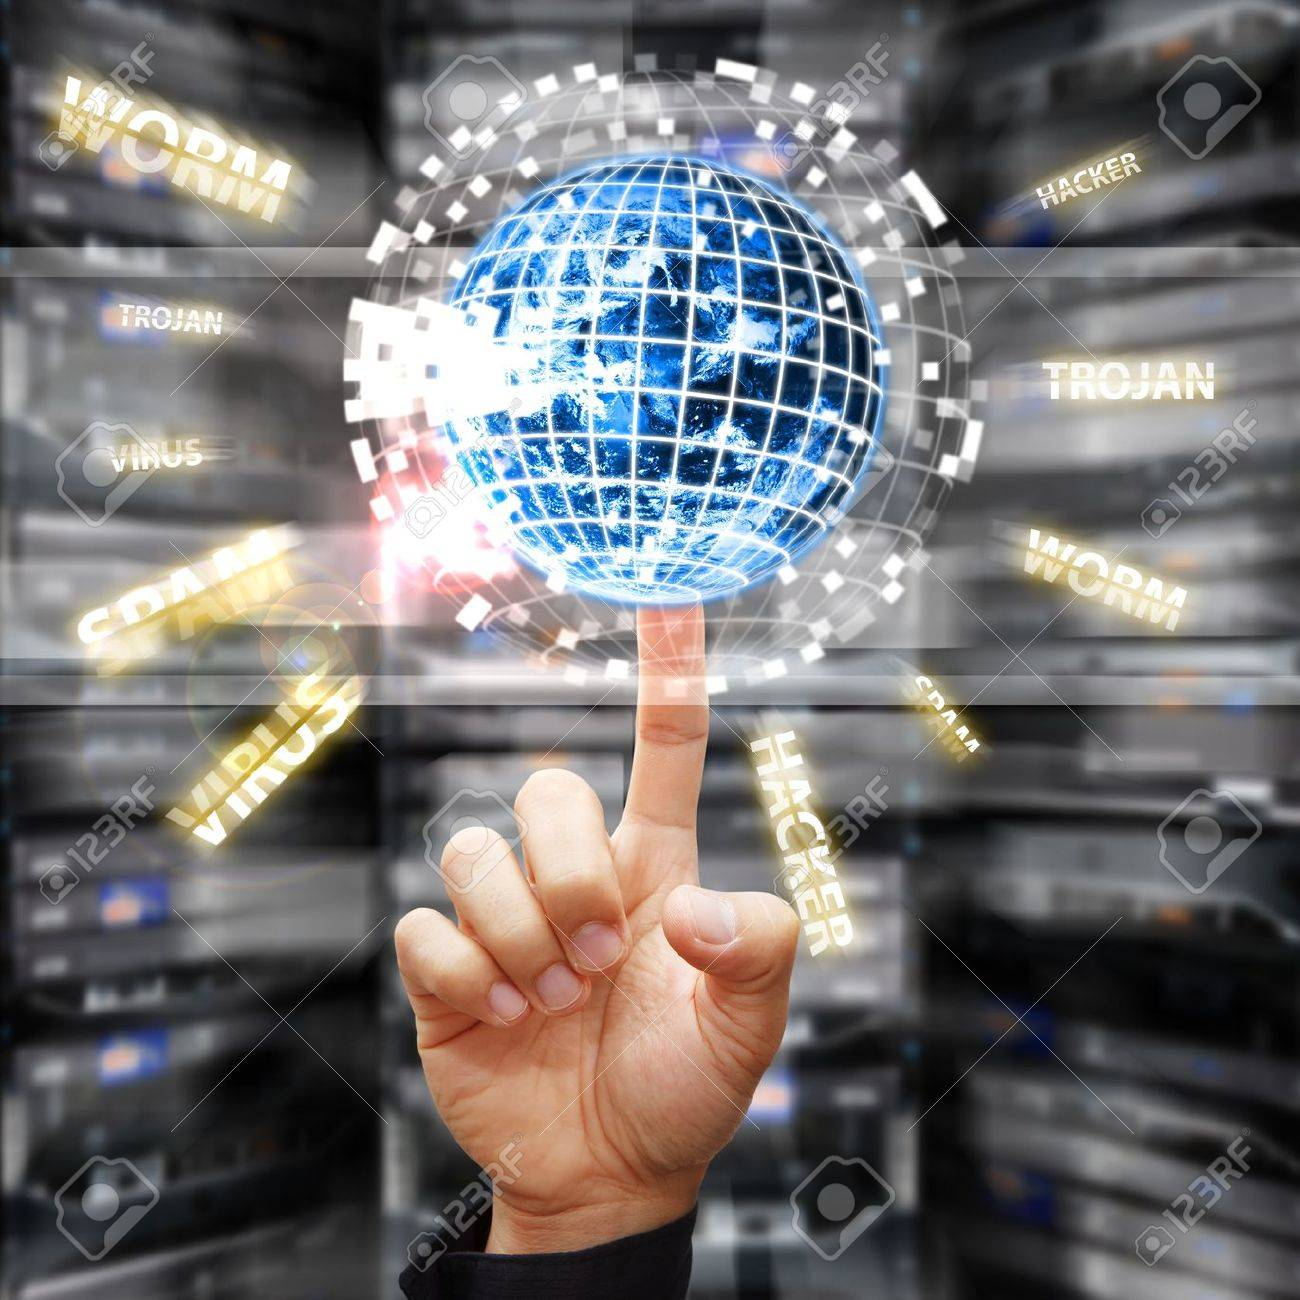 Digital world was protected in data center room Stock Photo - 15668328